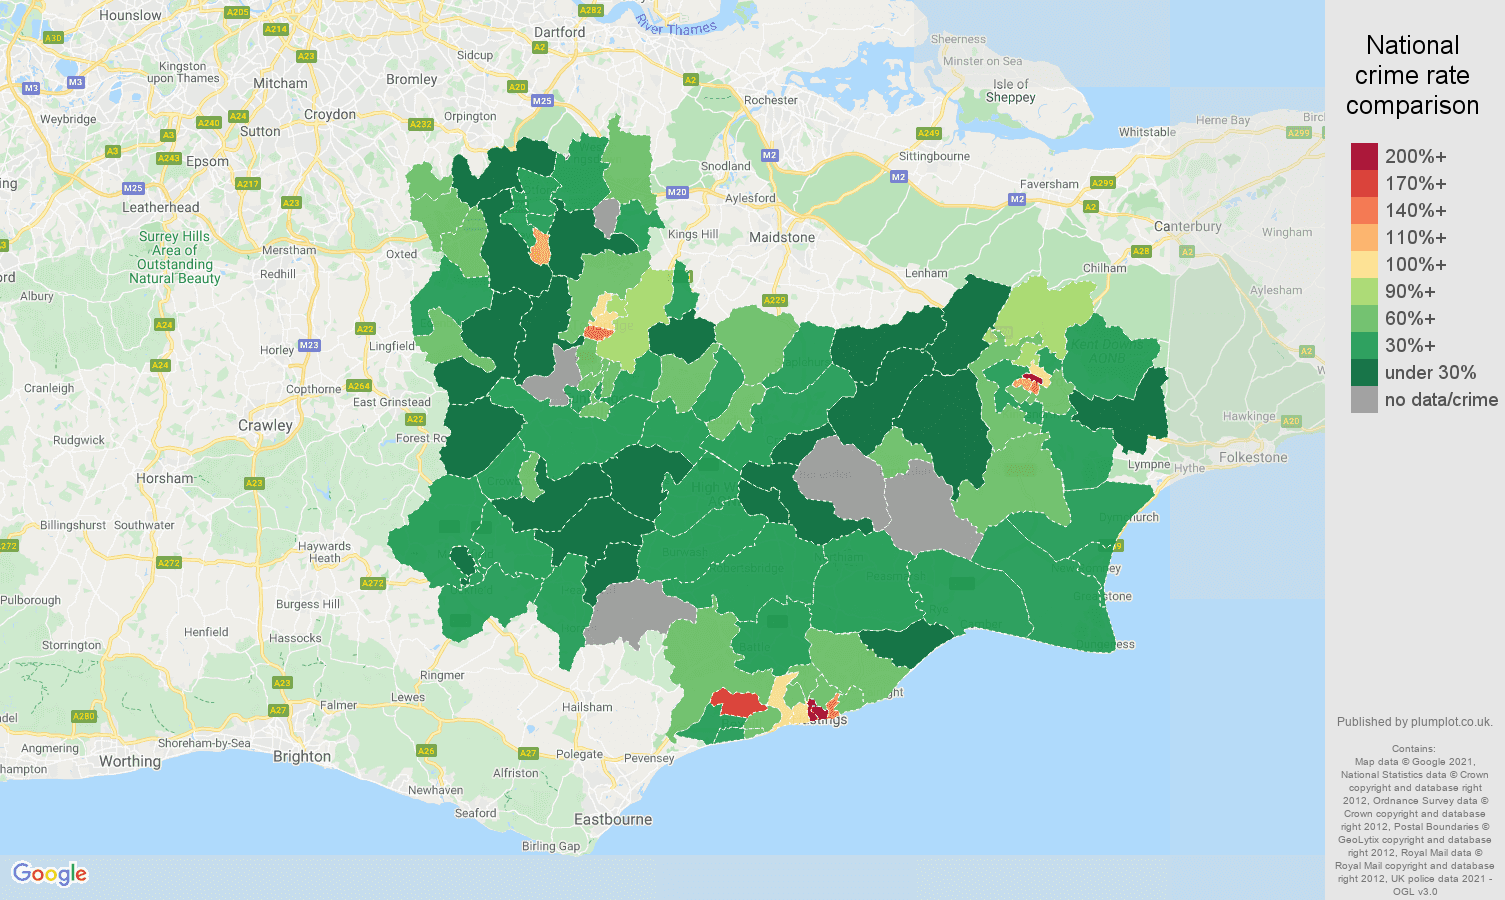 Tonbridge drugs crime rate comparison map